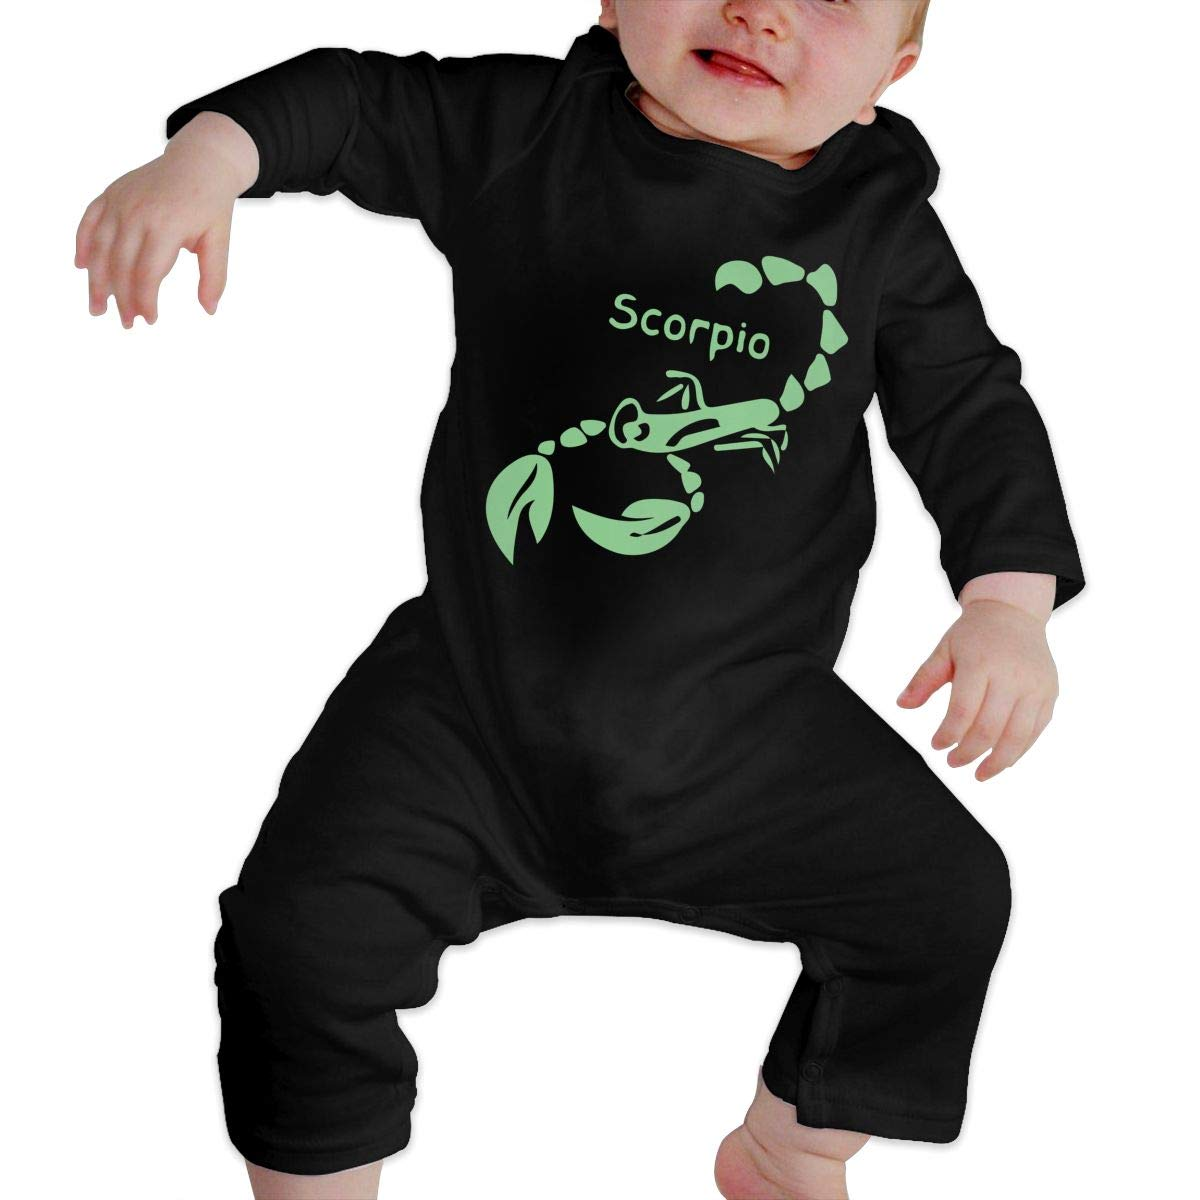 Fasenix Symbols Scorpio Newborn Baby Bodysuit Long Sleeve Overalls Outfits Clothes Romper Jumpsuit for Baby Boy Girl